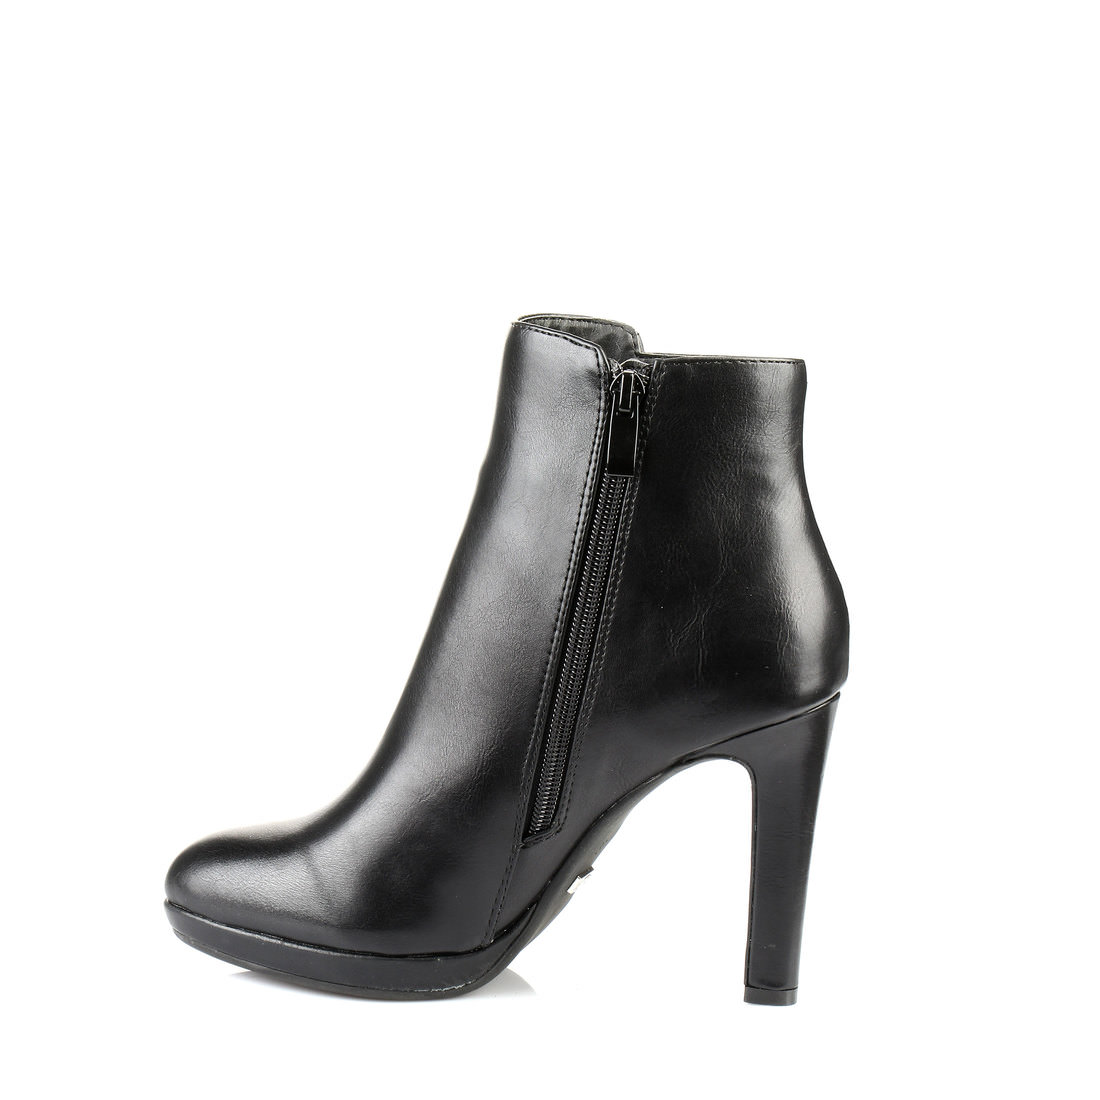 buffalo plateau ankle boots in black buy online in buffalo online shop buffalo. Black Bedroom Furniture Sets. Home Design Ideas